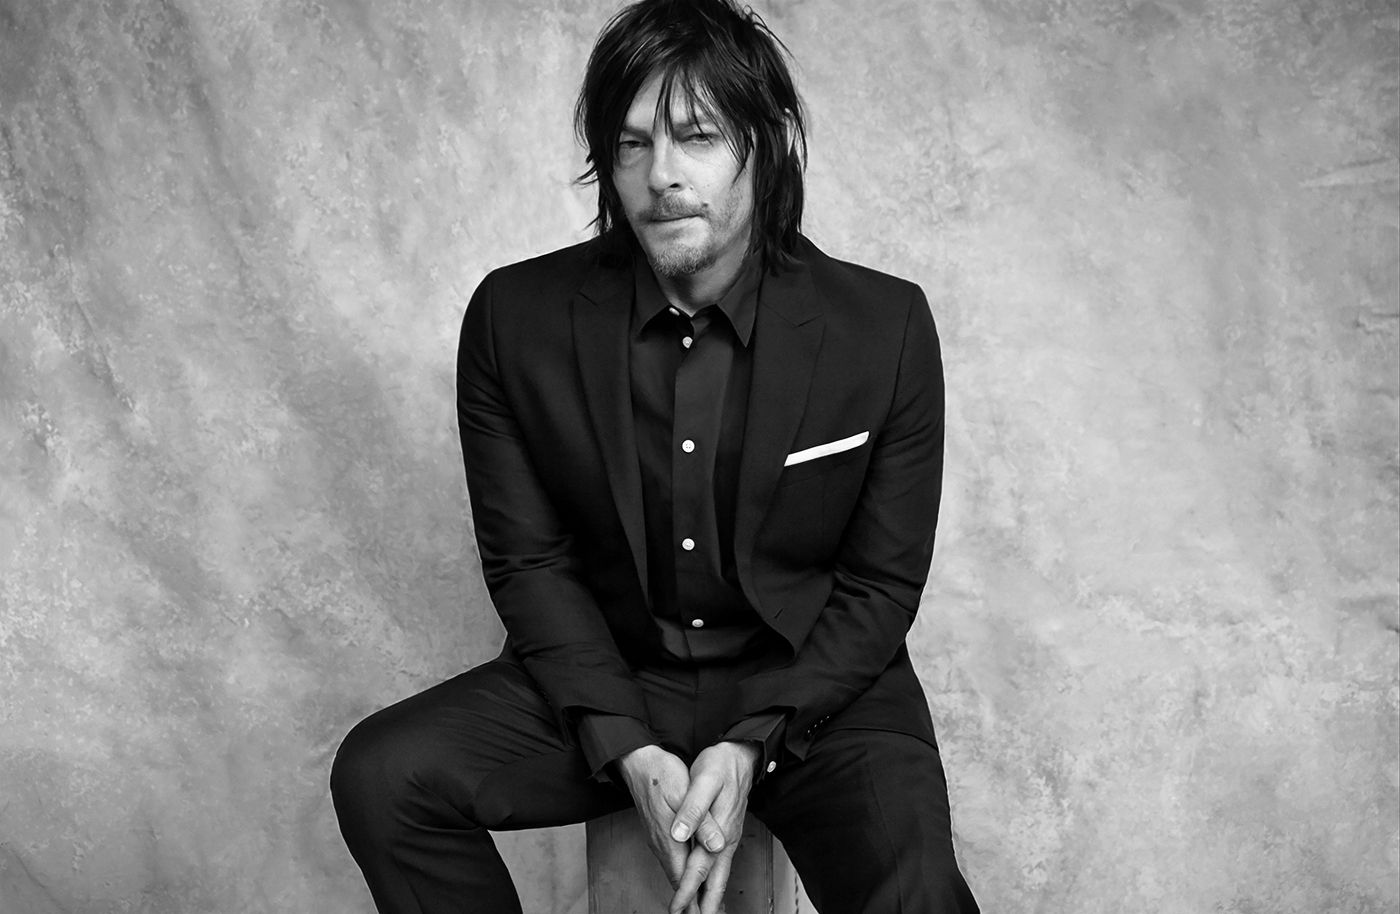 norman-reedus-the-imagista-photoshoot-011